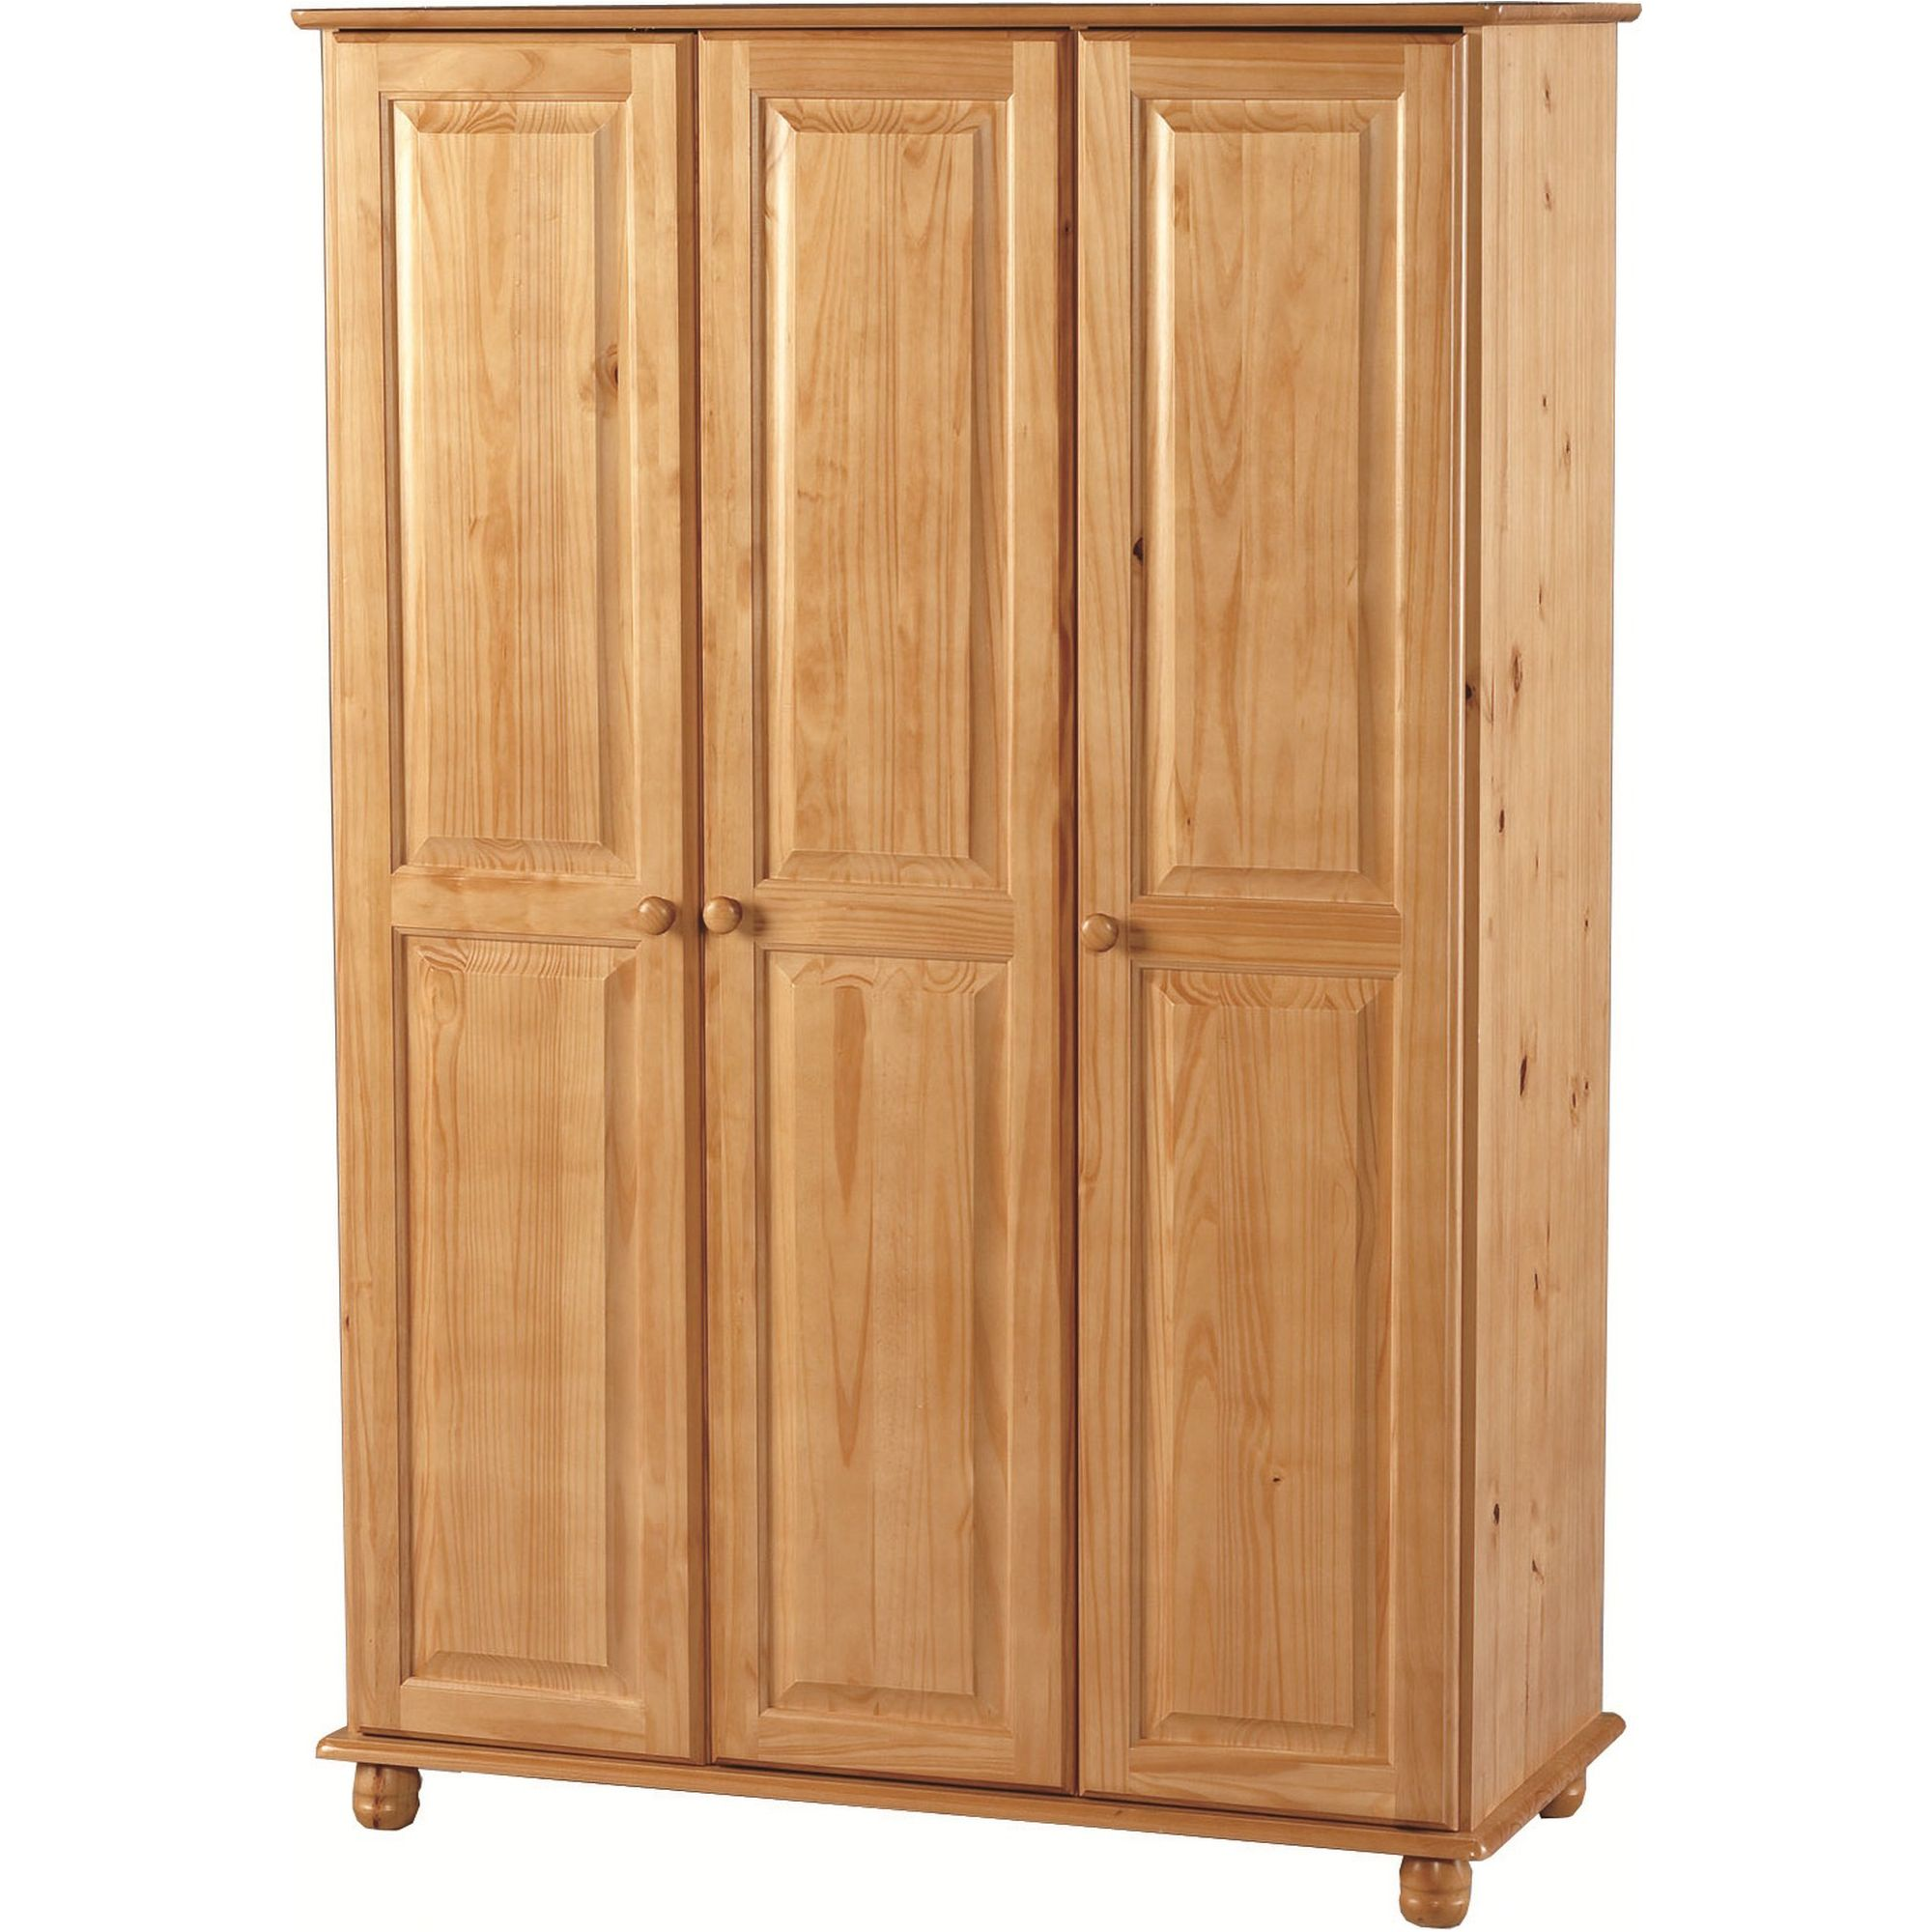 Home Essence Capricorn 3 Door Wardrobe at Tesco Direct